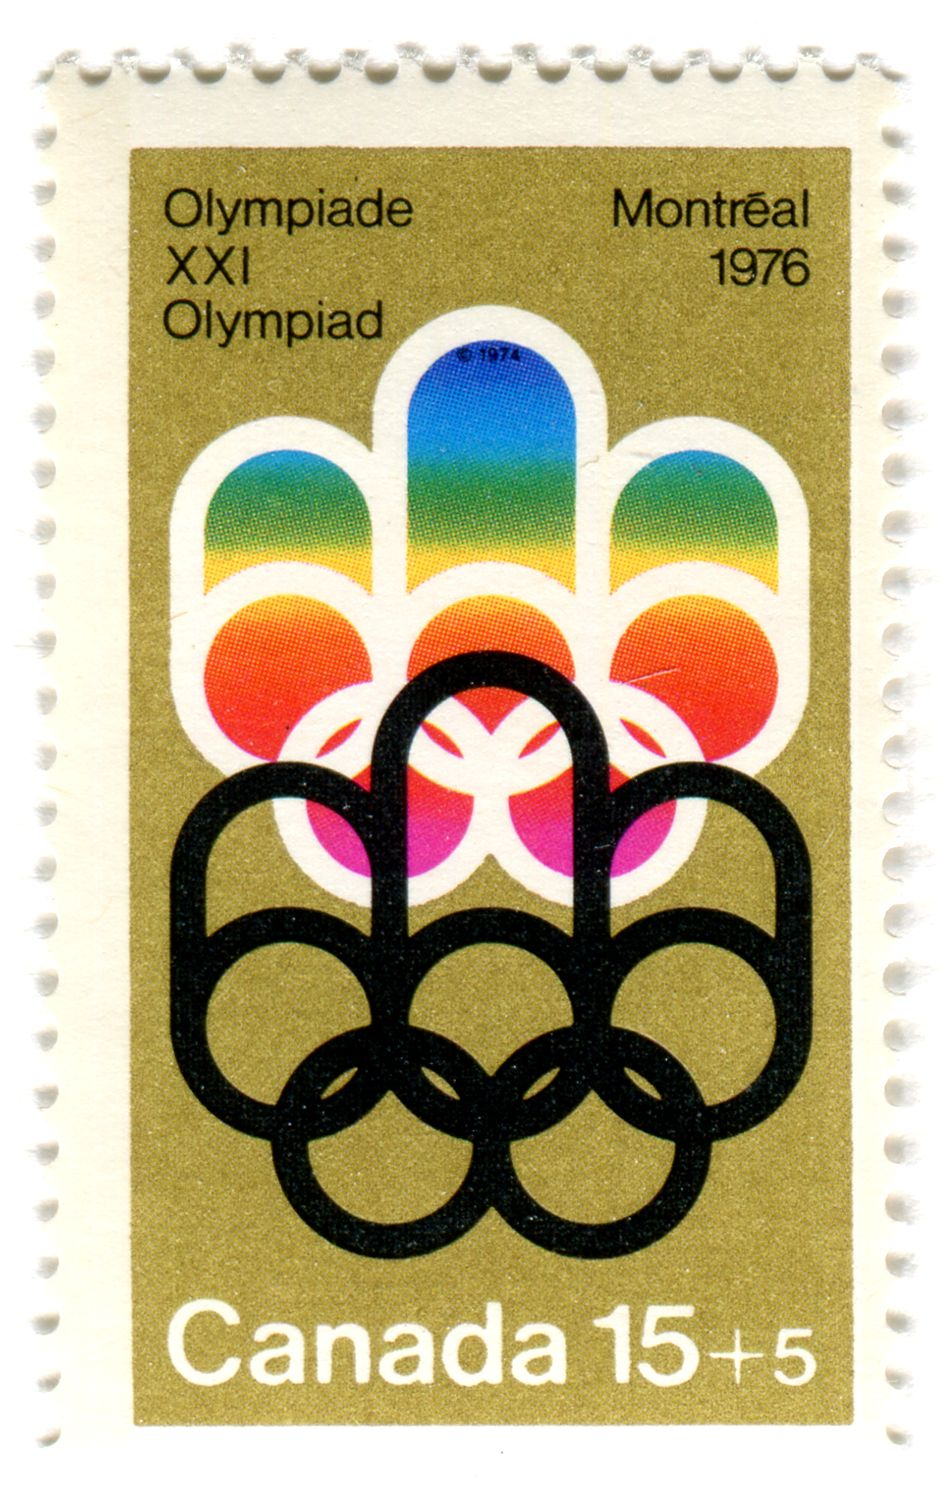 Montreal 1976 Olympiade Stamp / Metallic Gold/ G+A (my